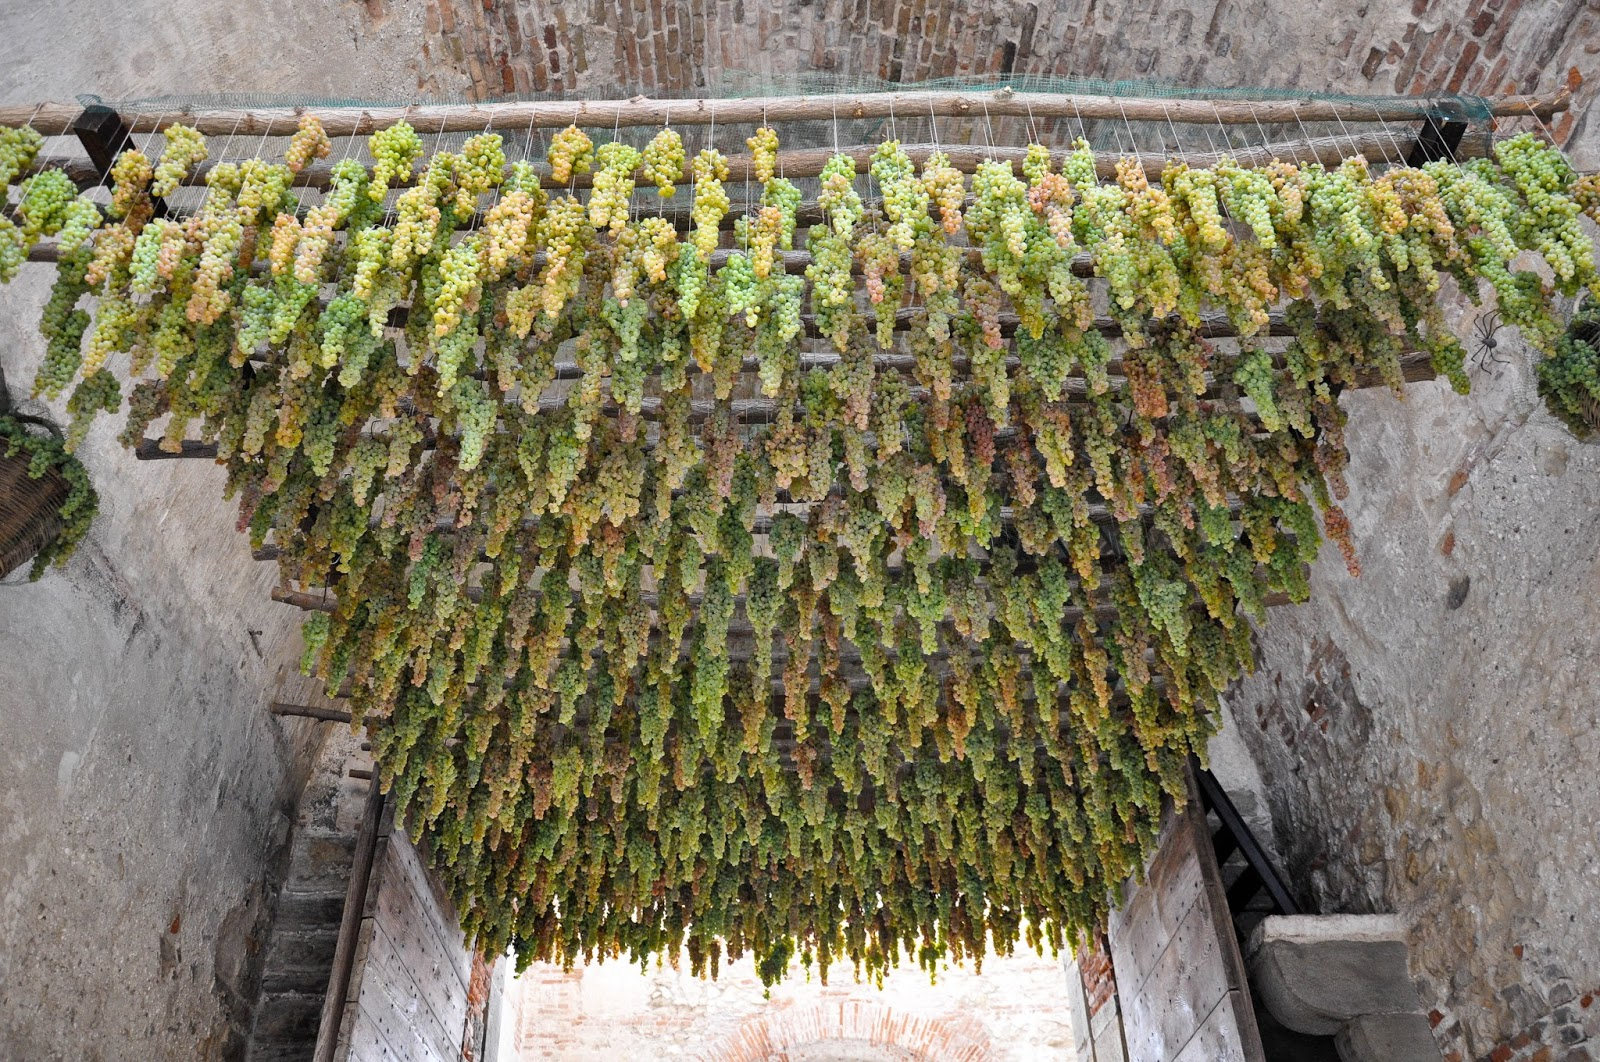 Bunches of grapes hanging under the arch of one of the gates in the defense wall of Soave, Veneto, Italy